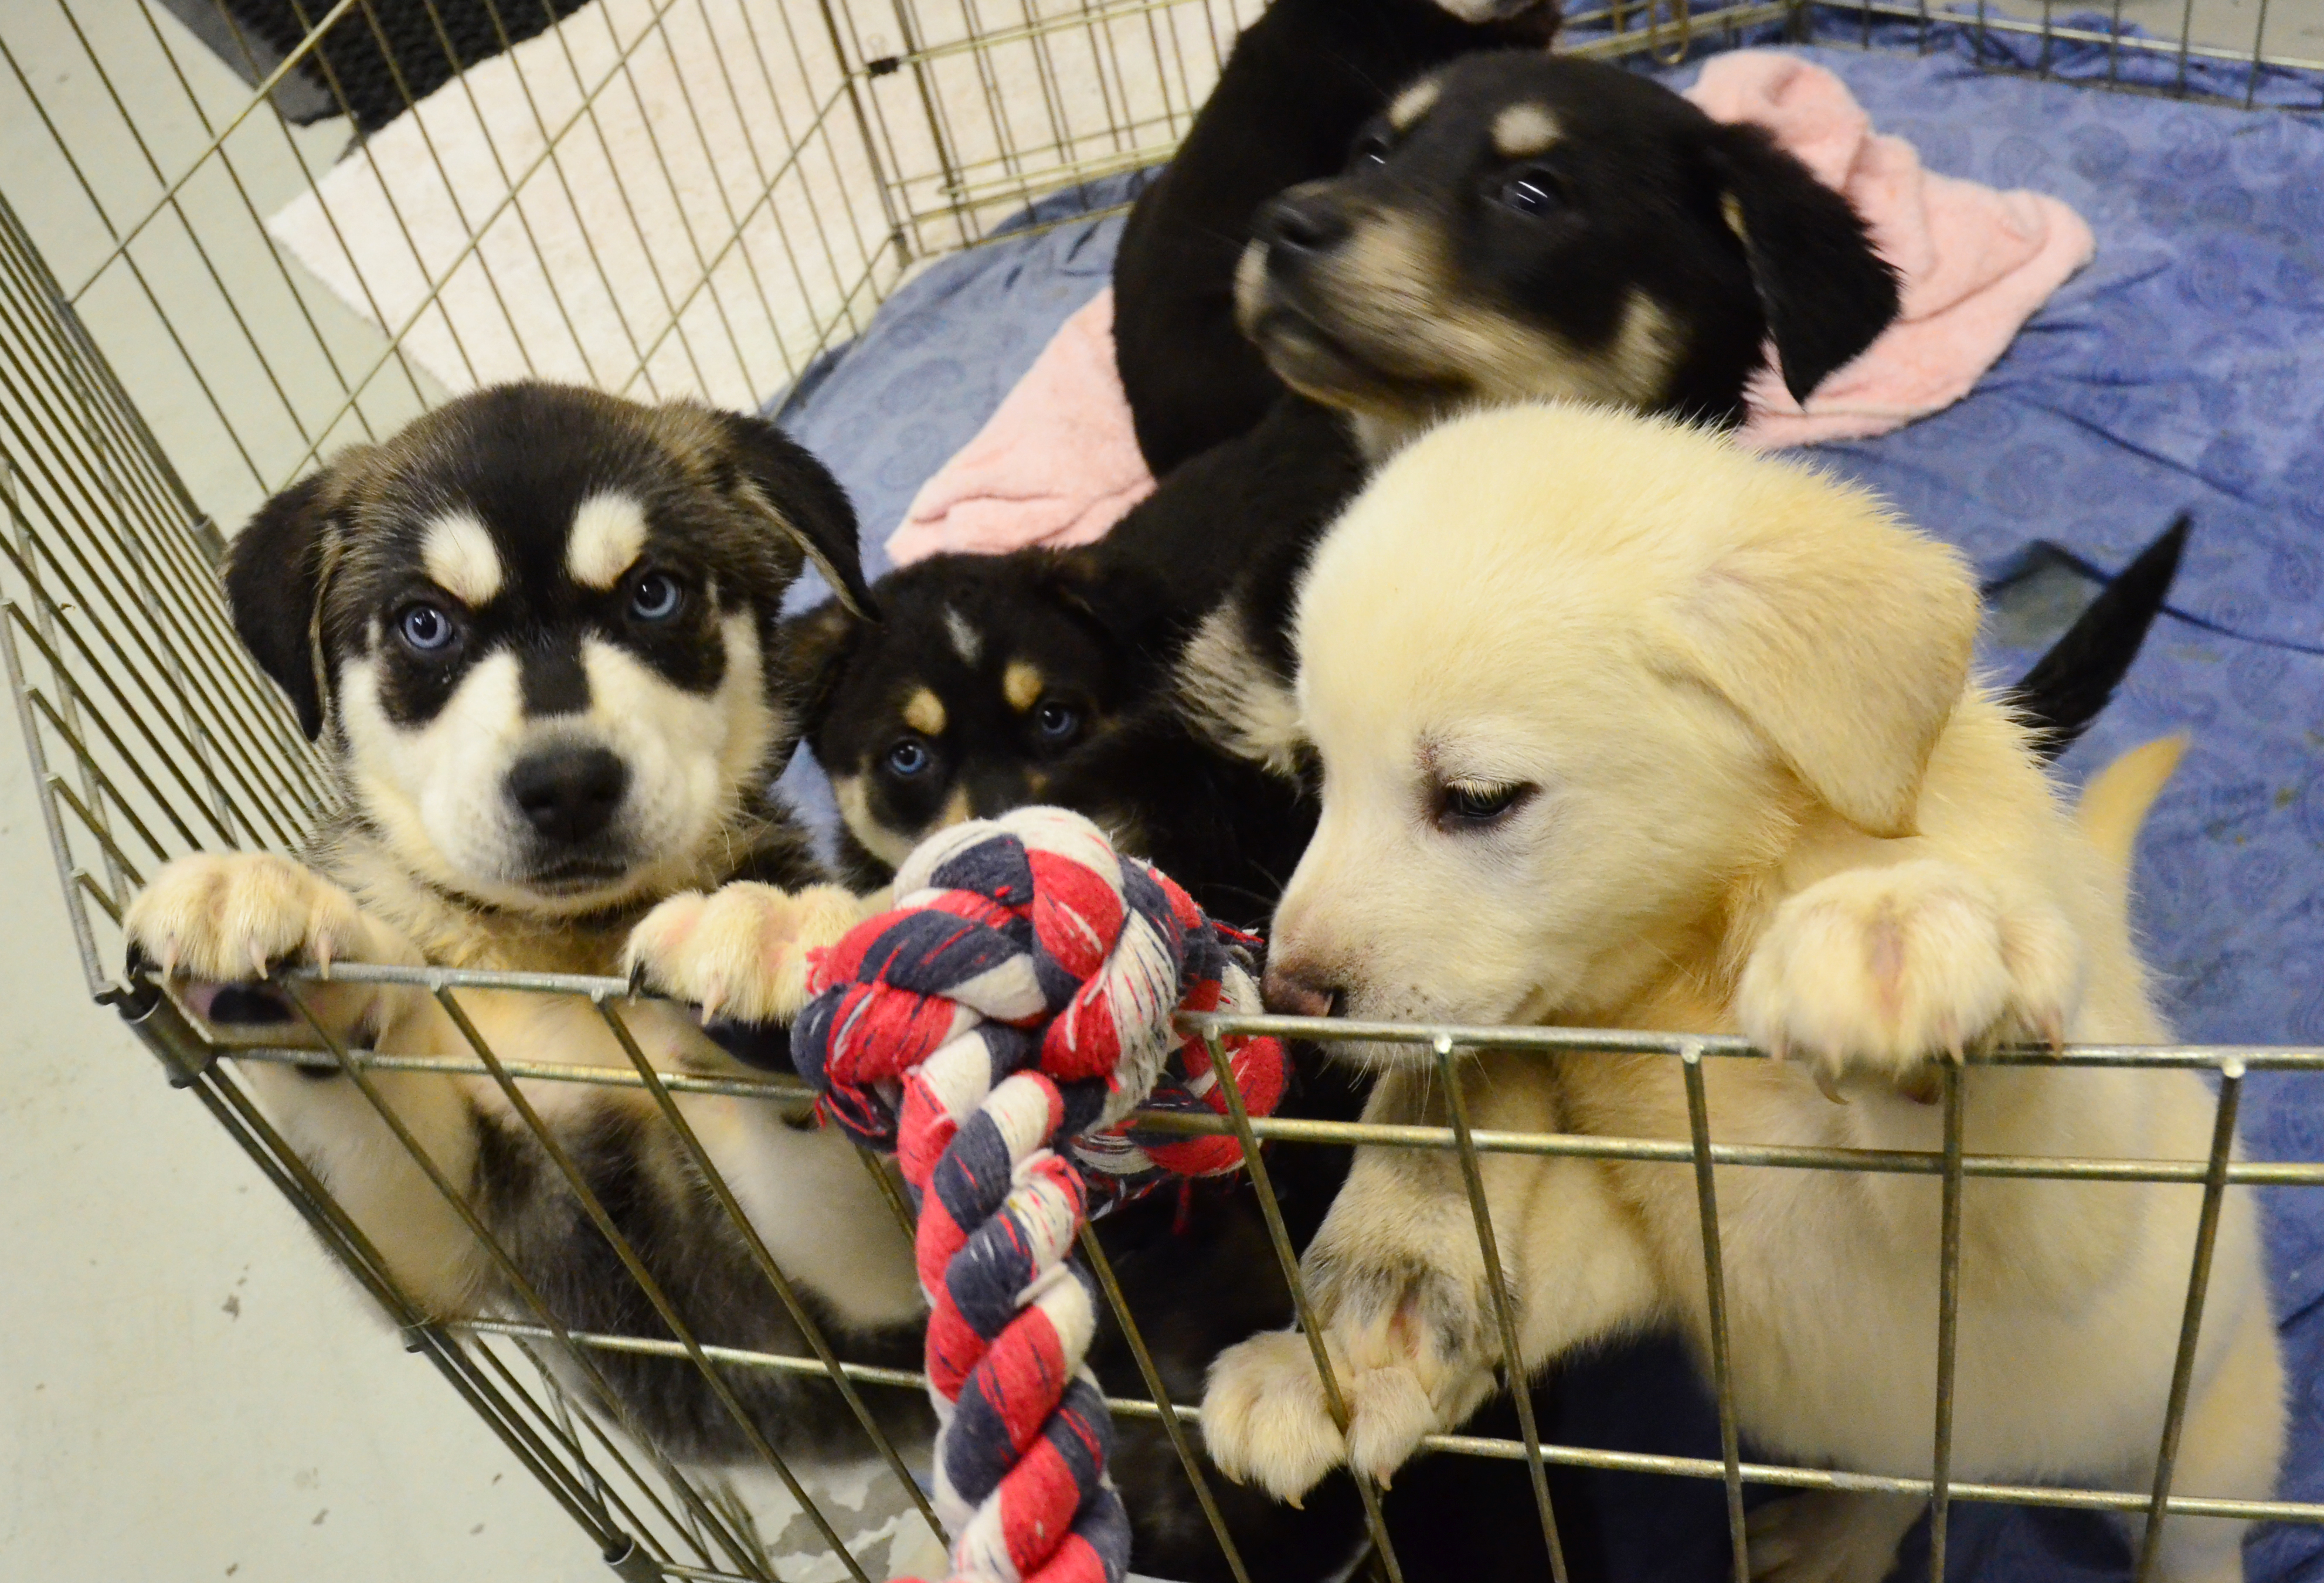 essays on puppies The dog is a domestic pet animal everybody likes to keep it in their home it helps humankind so much in various fieldswe have provided the essay on the dog in different word limitsyou can select any according to your necessity.